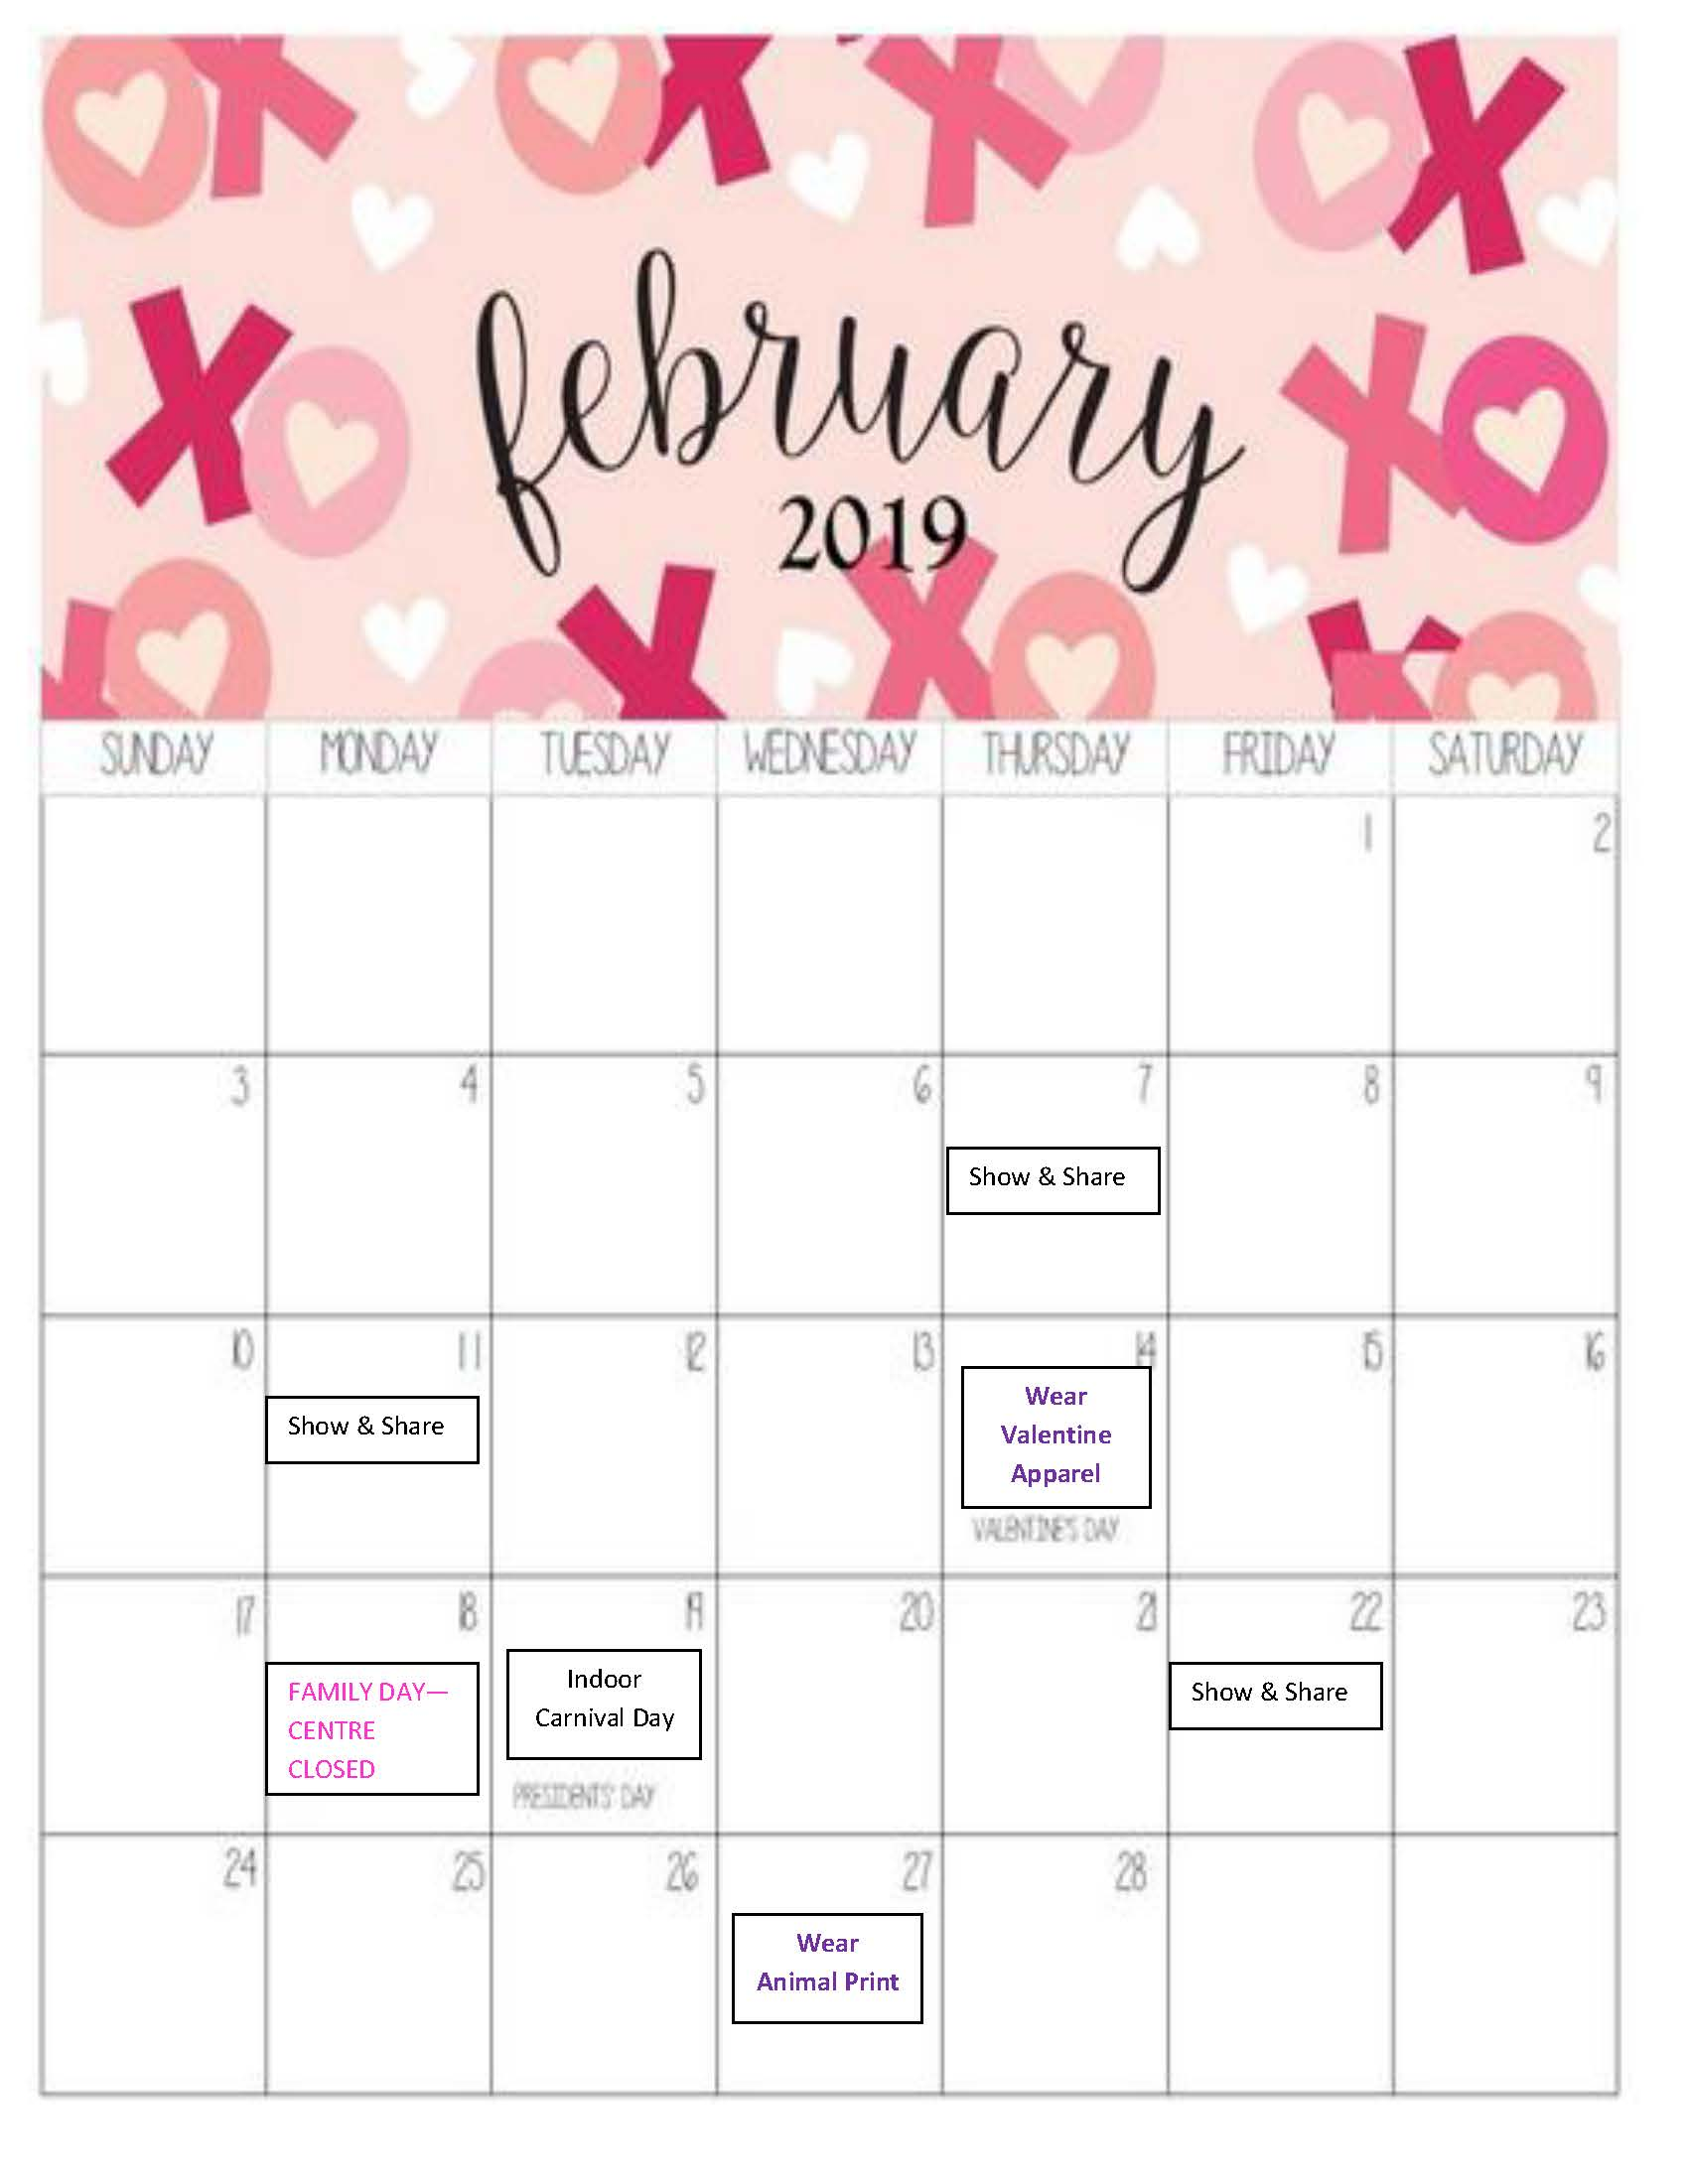 JAN-AND-FEB-2019-CALENDARS_Page_2.jpg